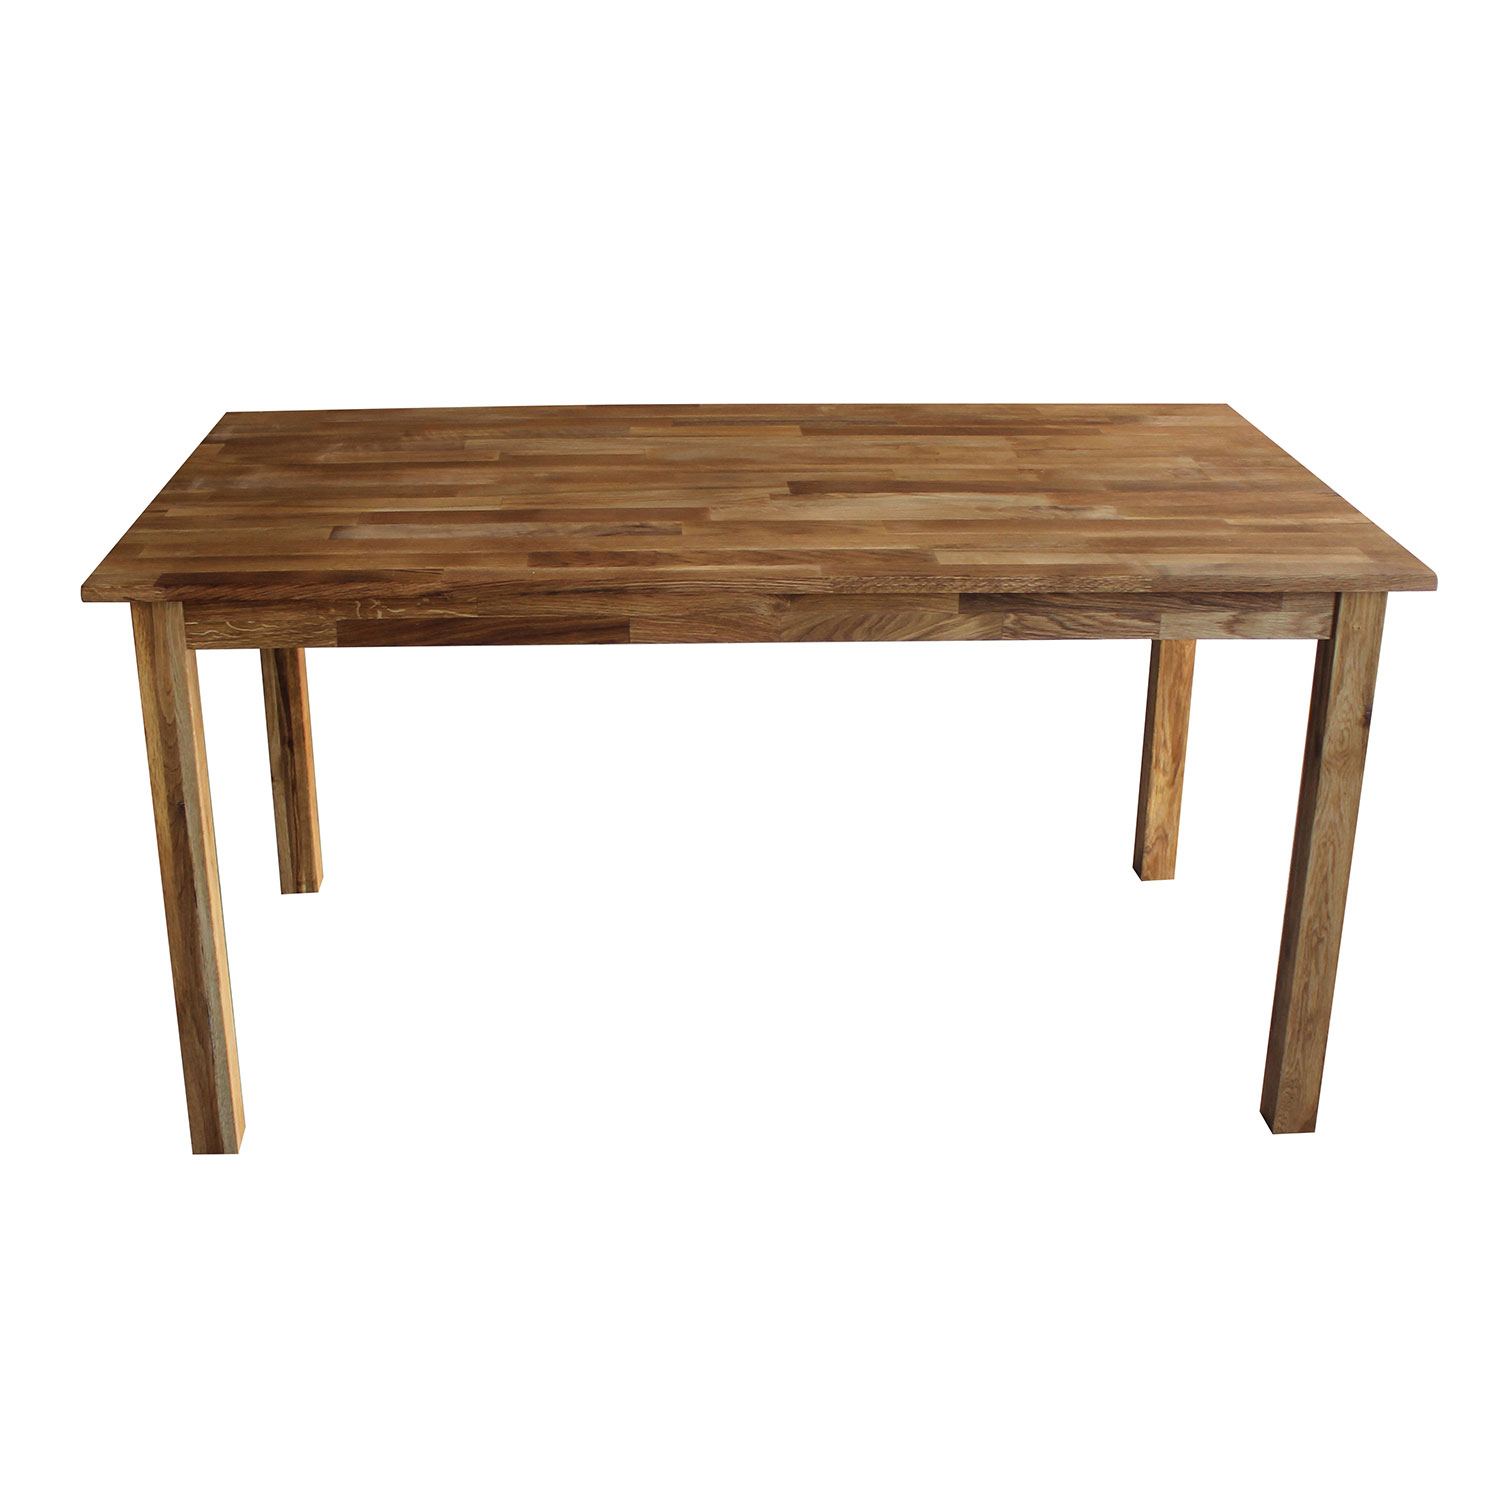 Charles bentley solid oak 6 8 seater wooden dining table for Solid oak dining table